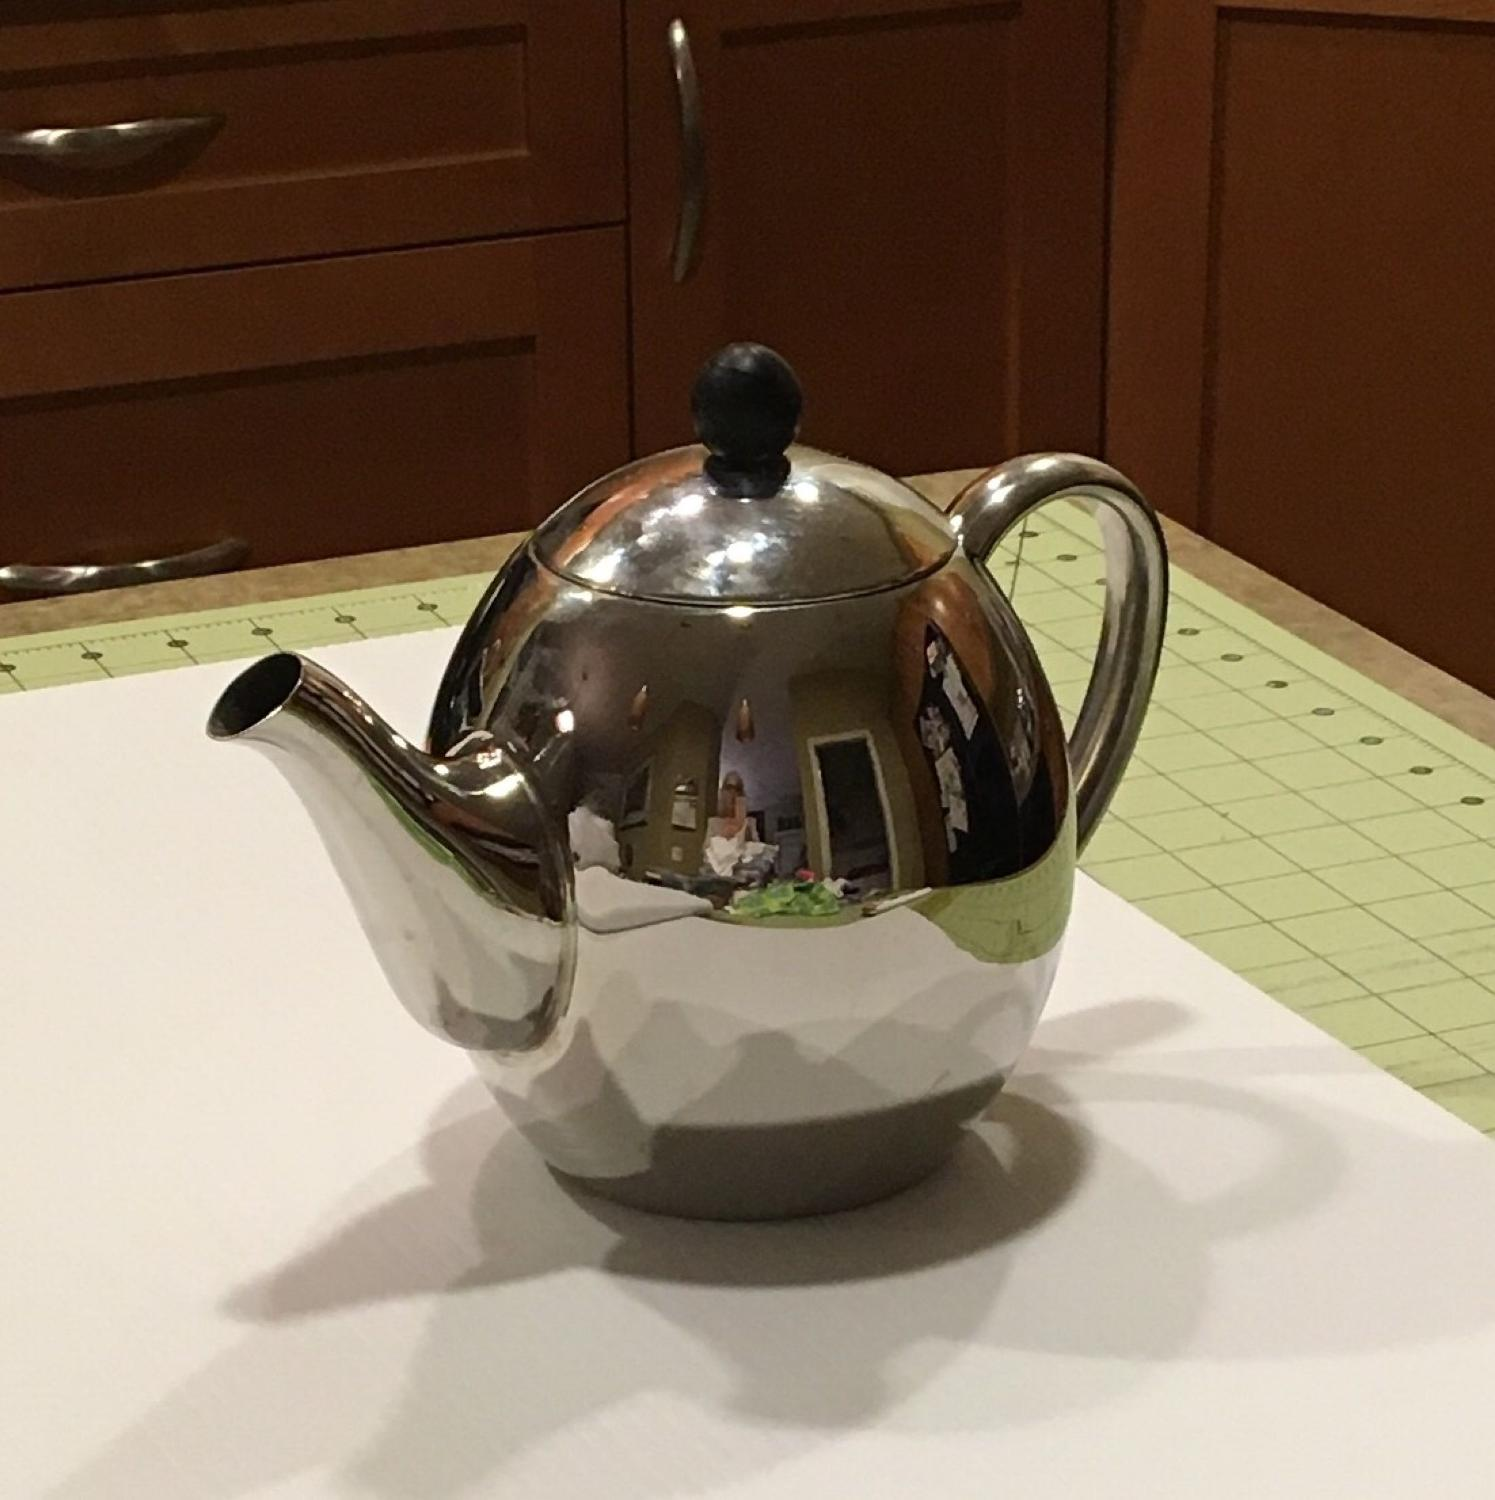 Find More Epicure Teapot For Sale At Up To 90% Off